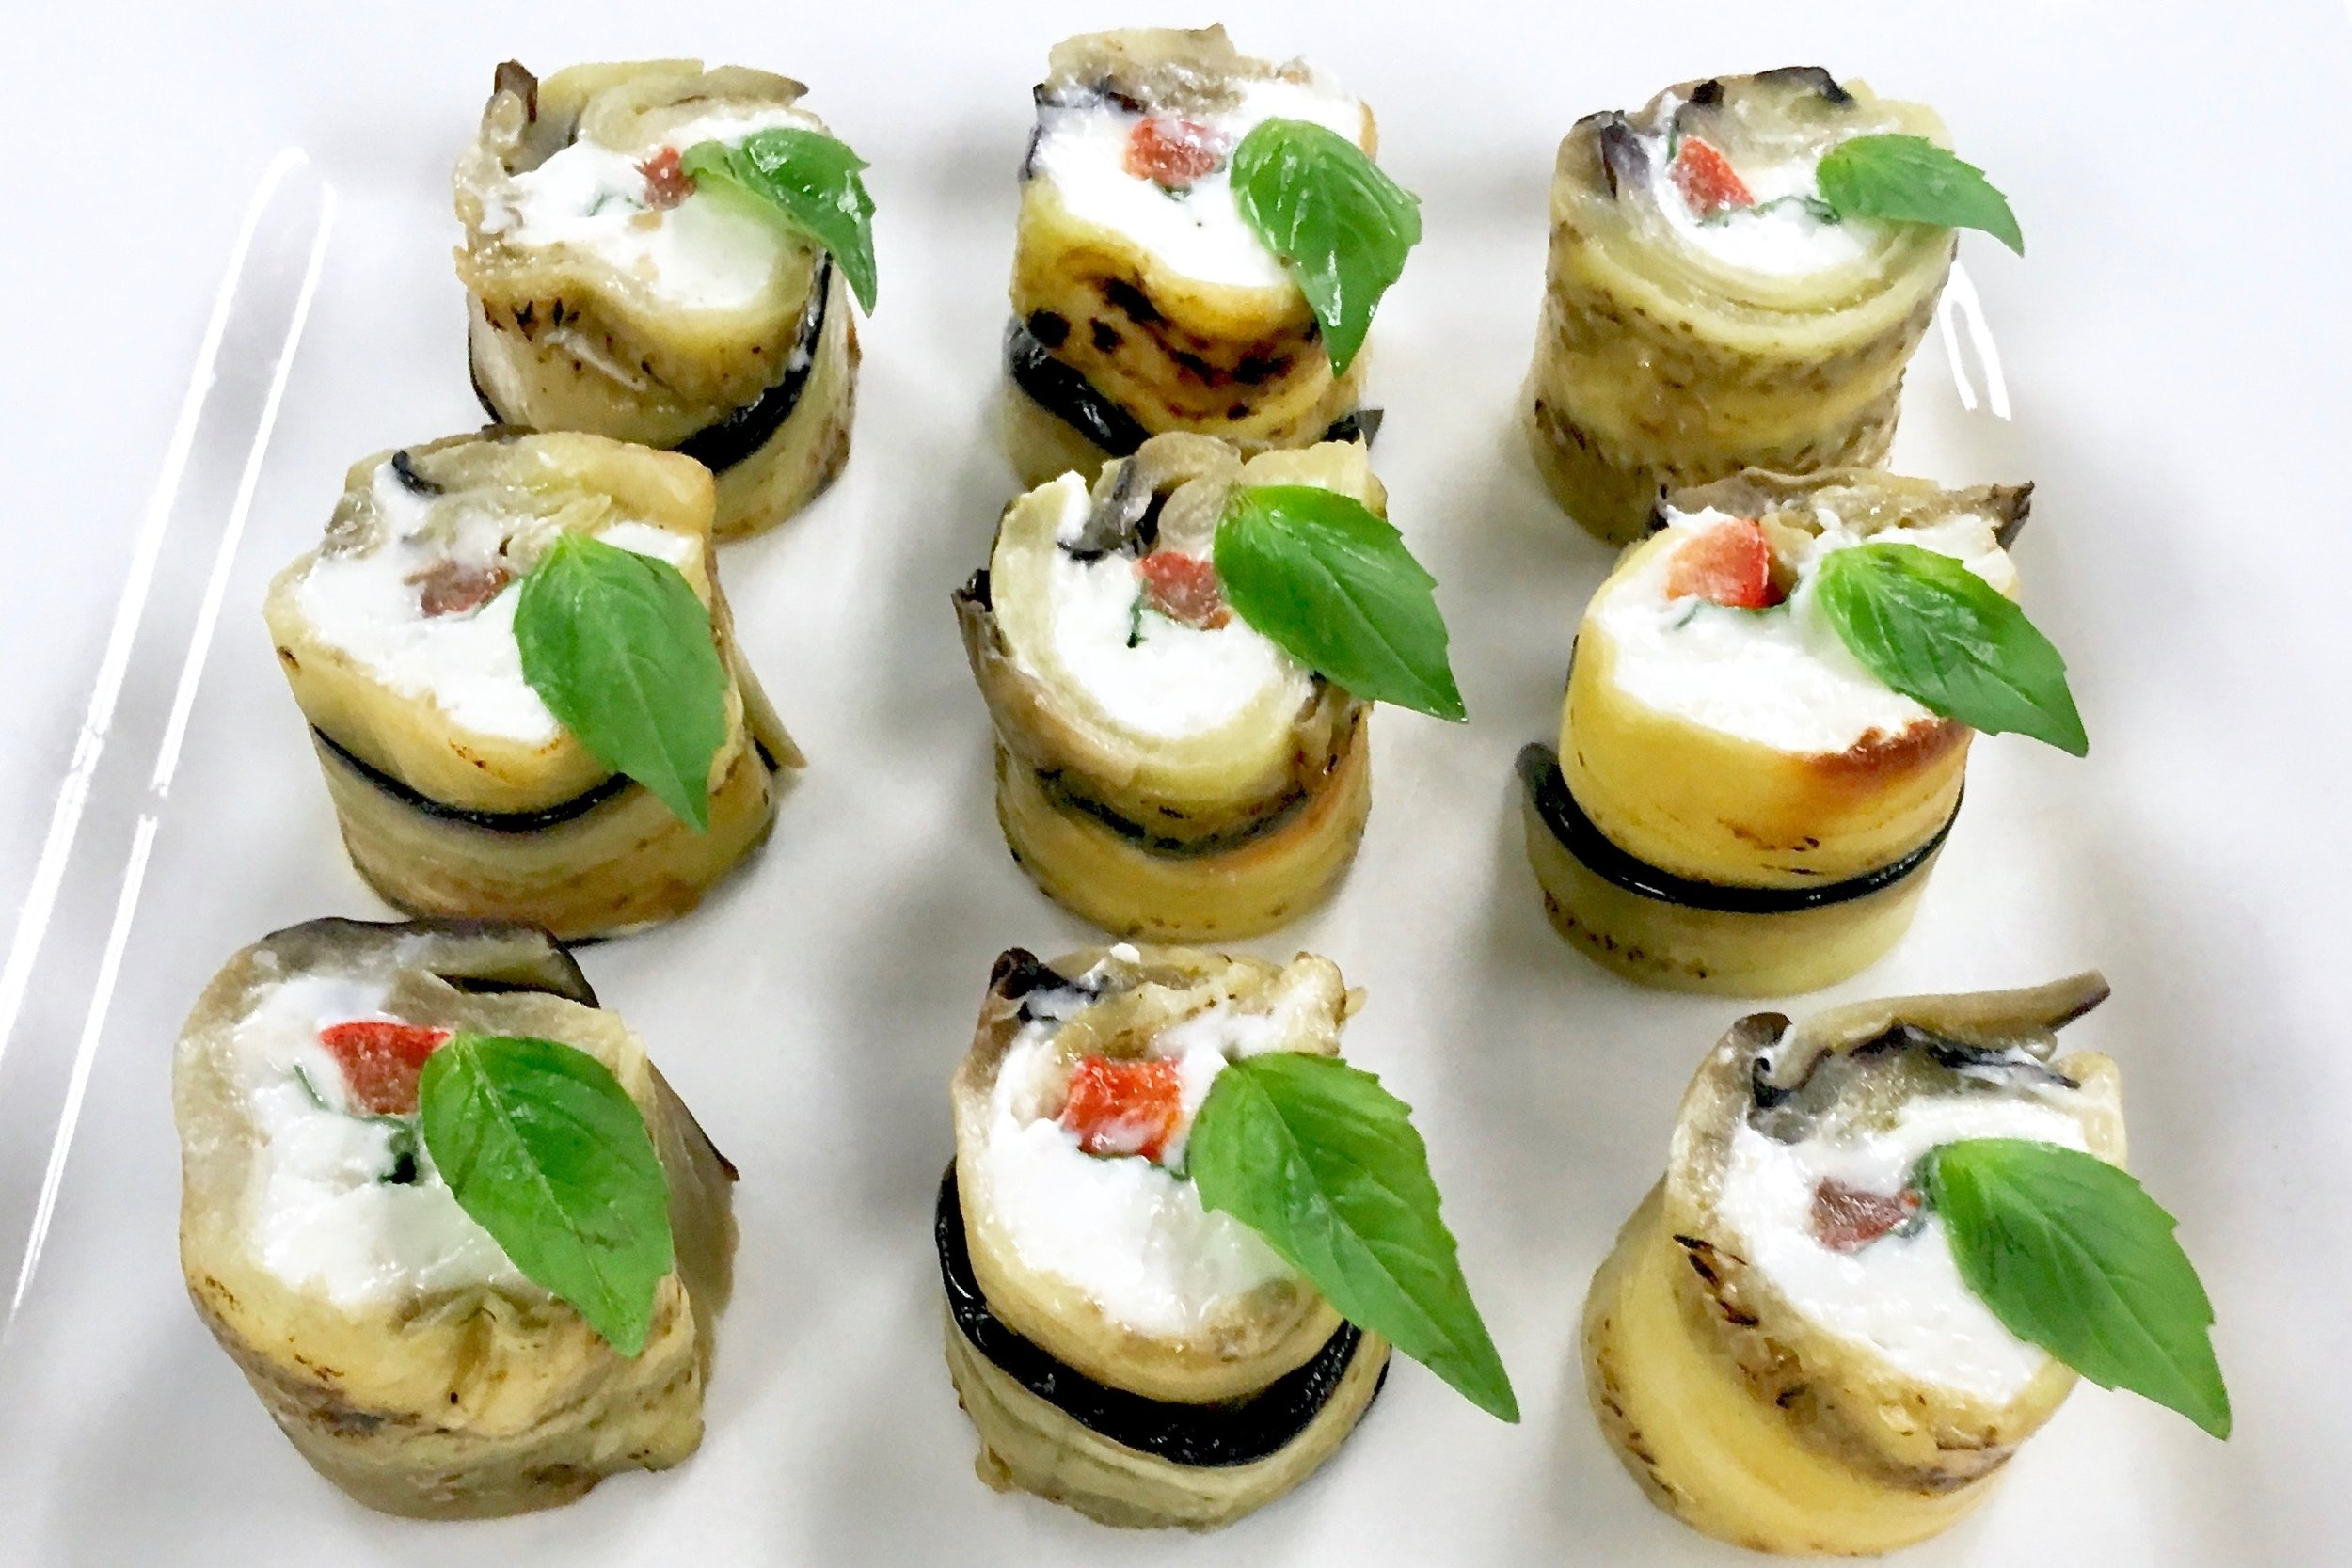 Aubergine rolls with goats cheese, basil and confit red pepper